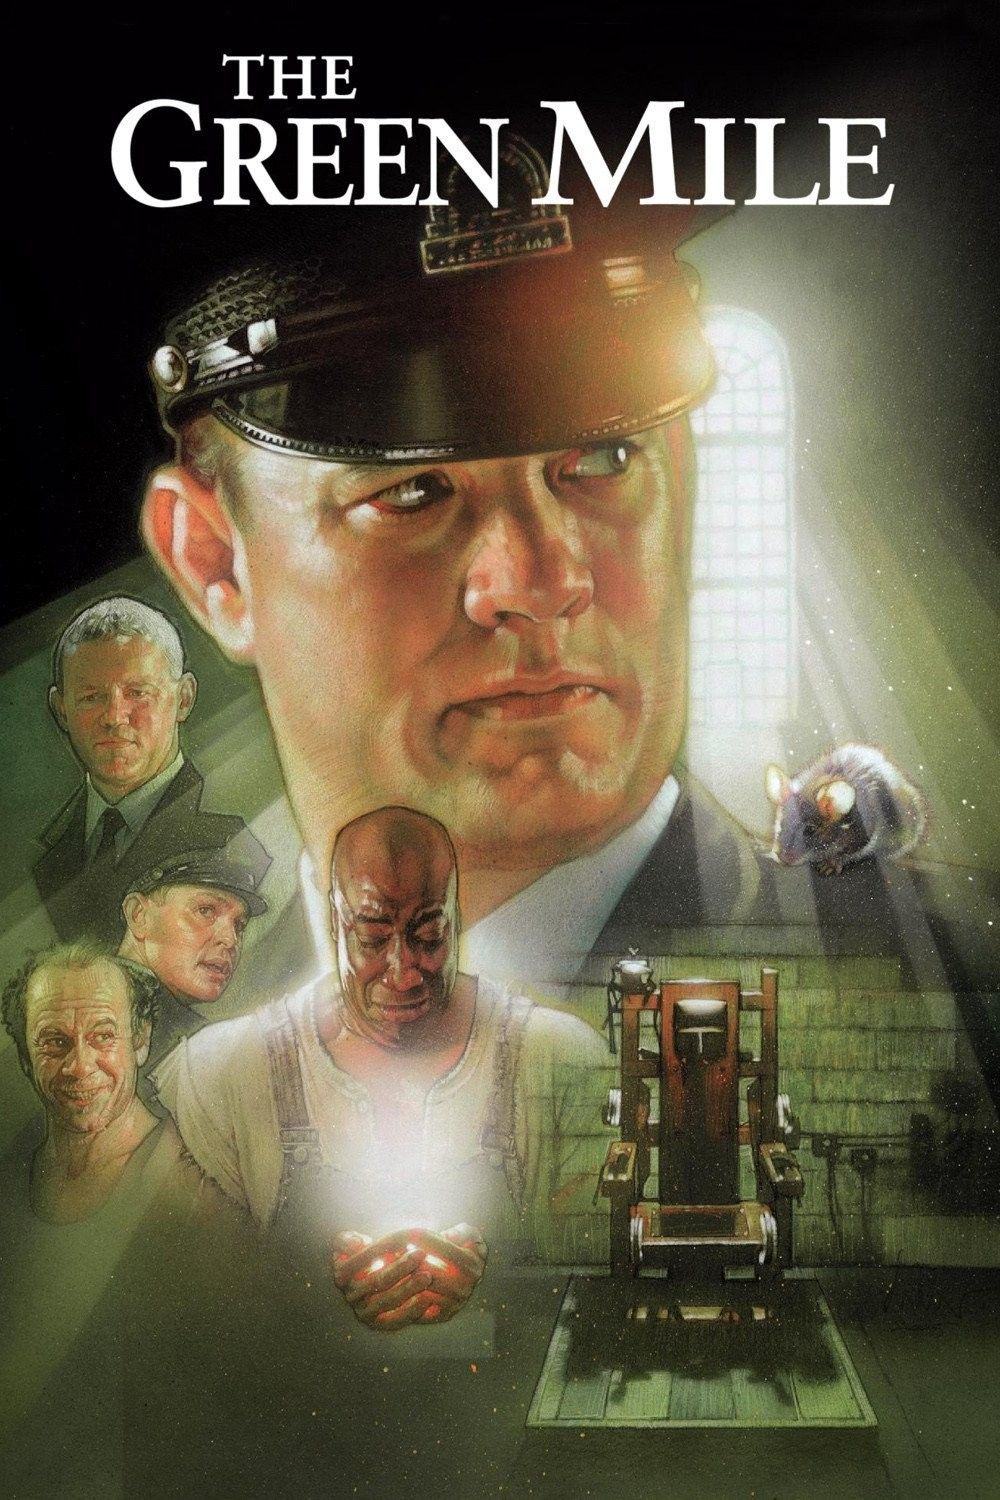 the green mile watch movies online watch the green the green mile 1999 watch movies online watch the green mile